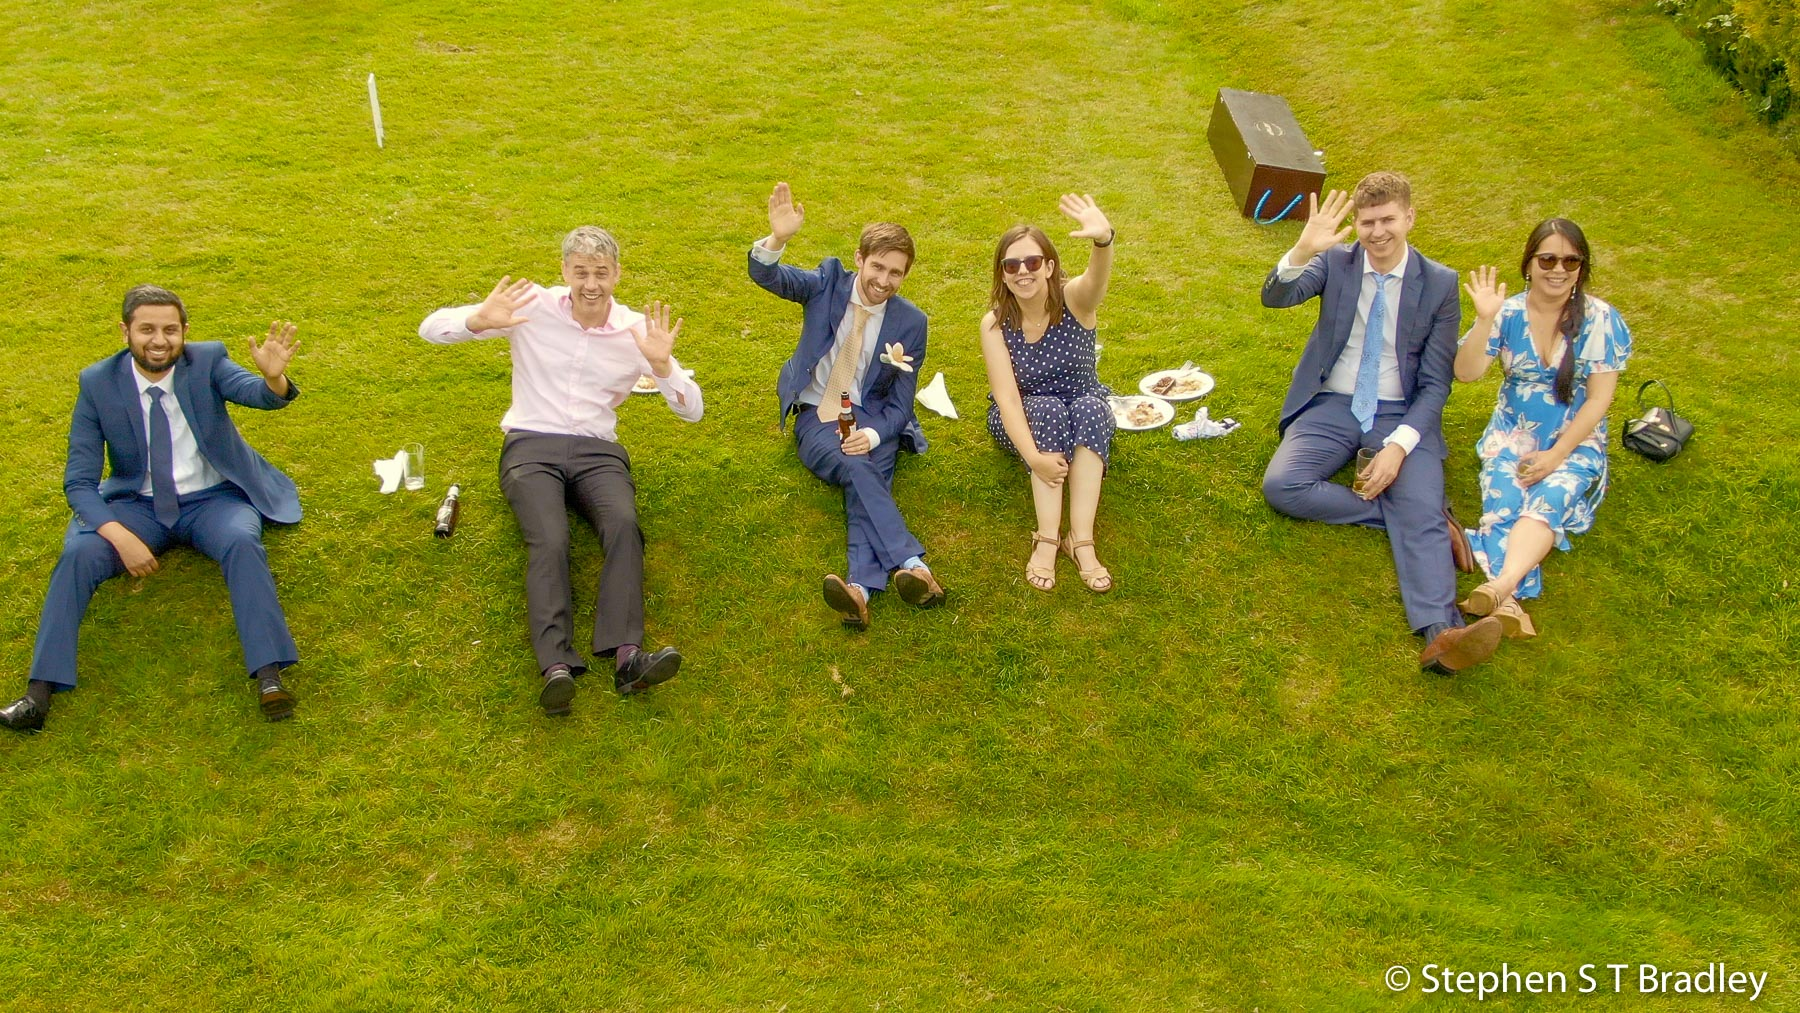 Aerial video of country house wedding at Birdsgrove, Derbyshire, UK, by Stephen S T Bradley - aerial drone photographer and video production services in Dublin and throughout Ireland. Screenshot reference 17